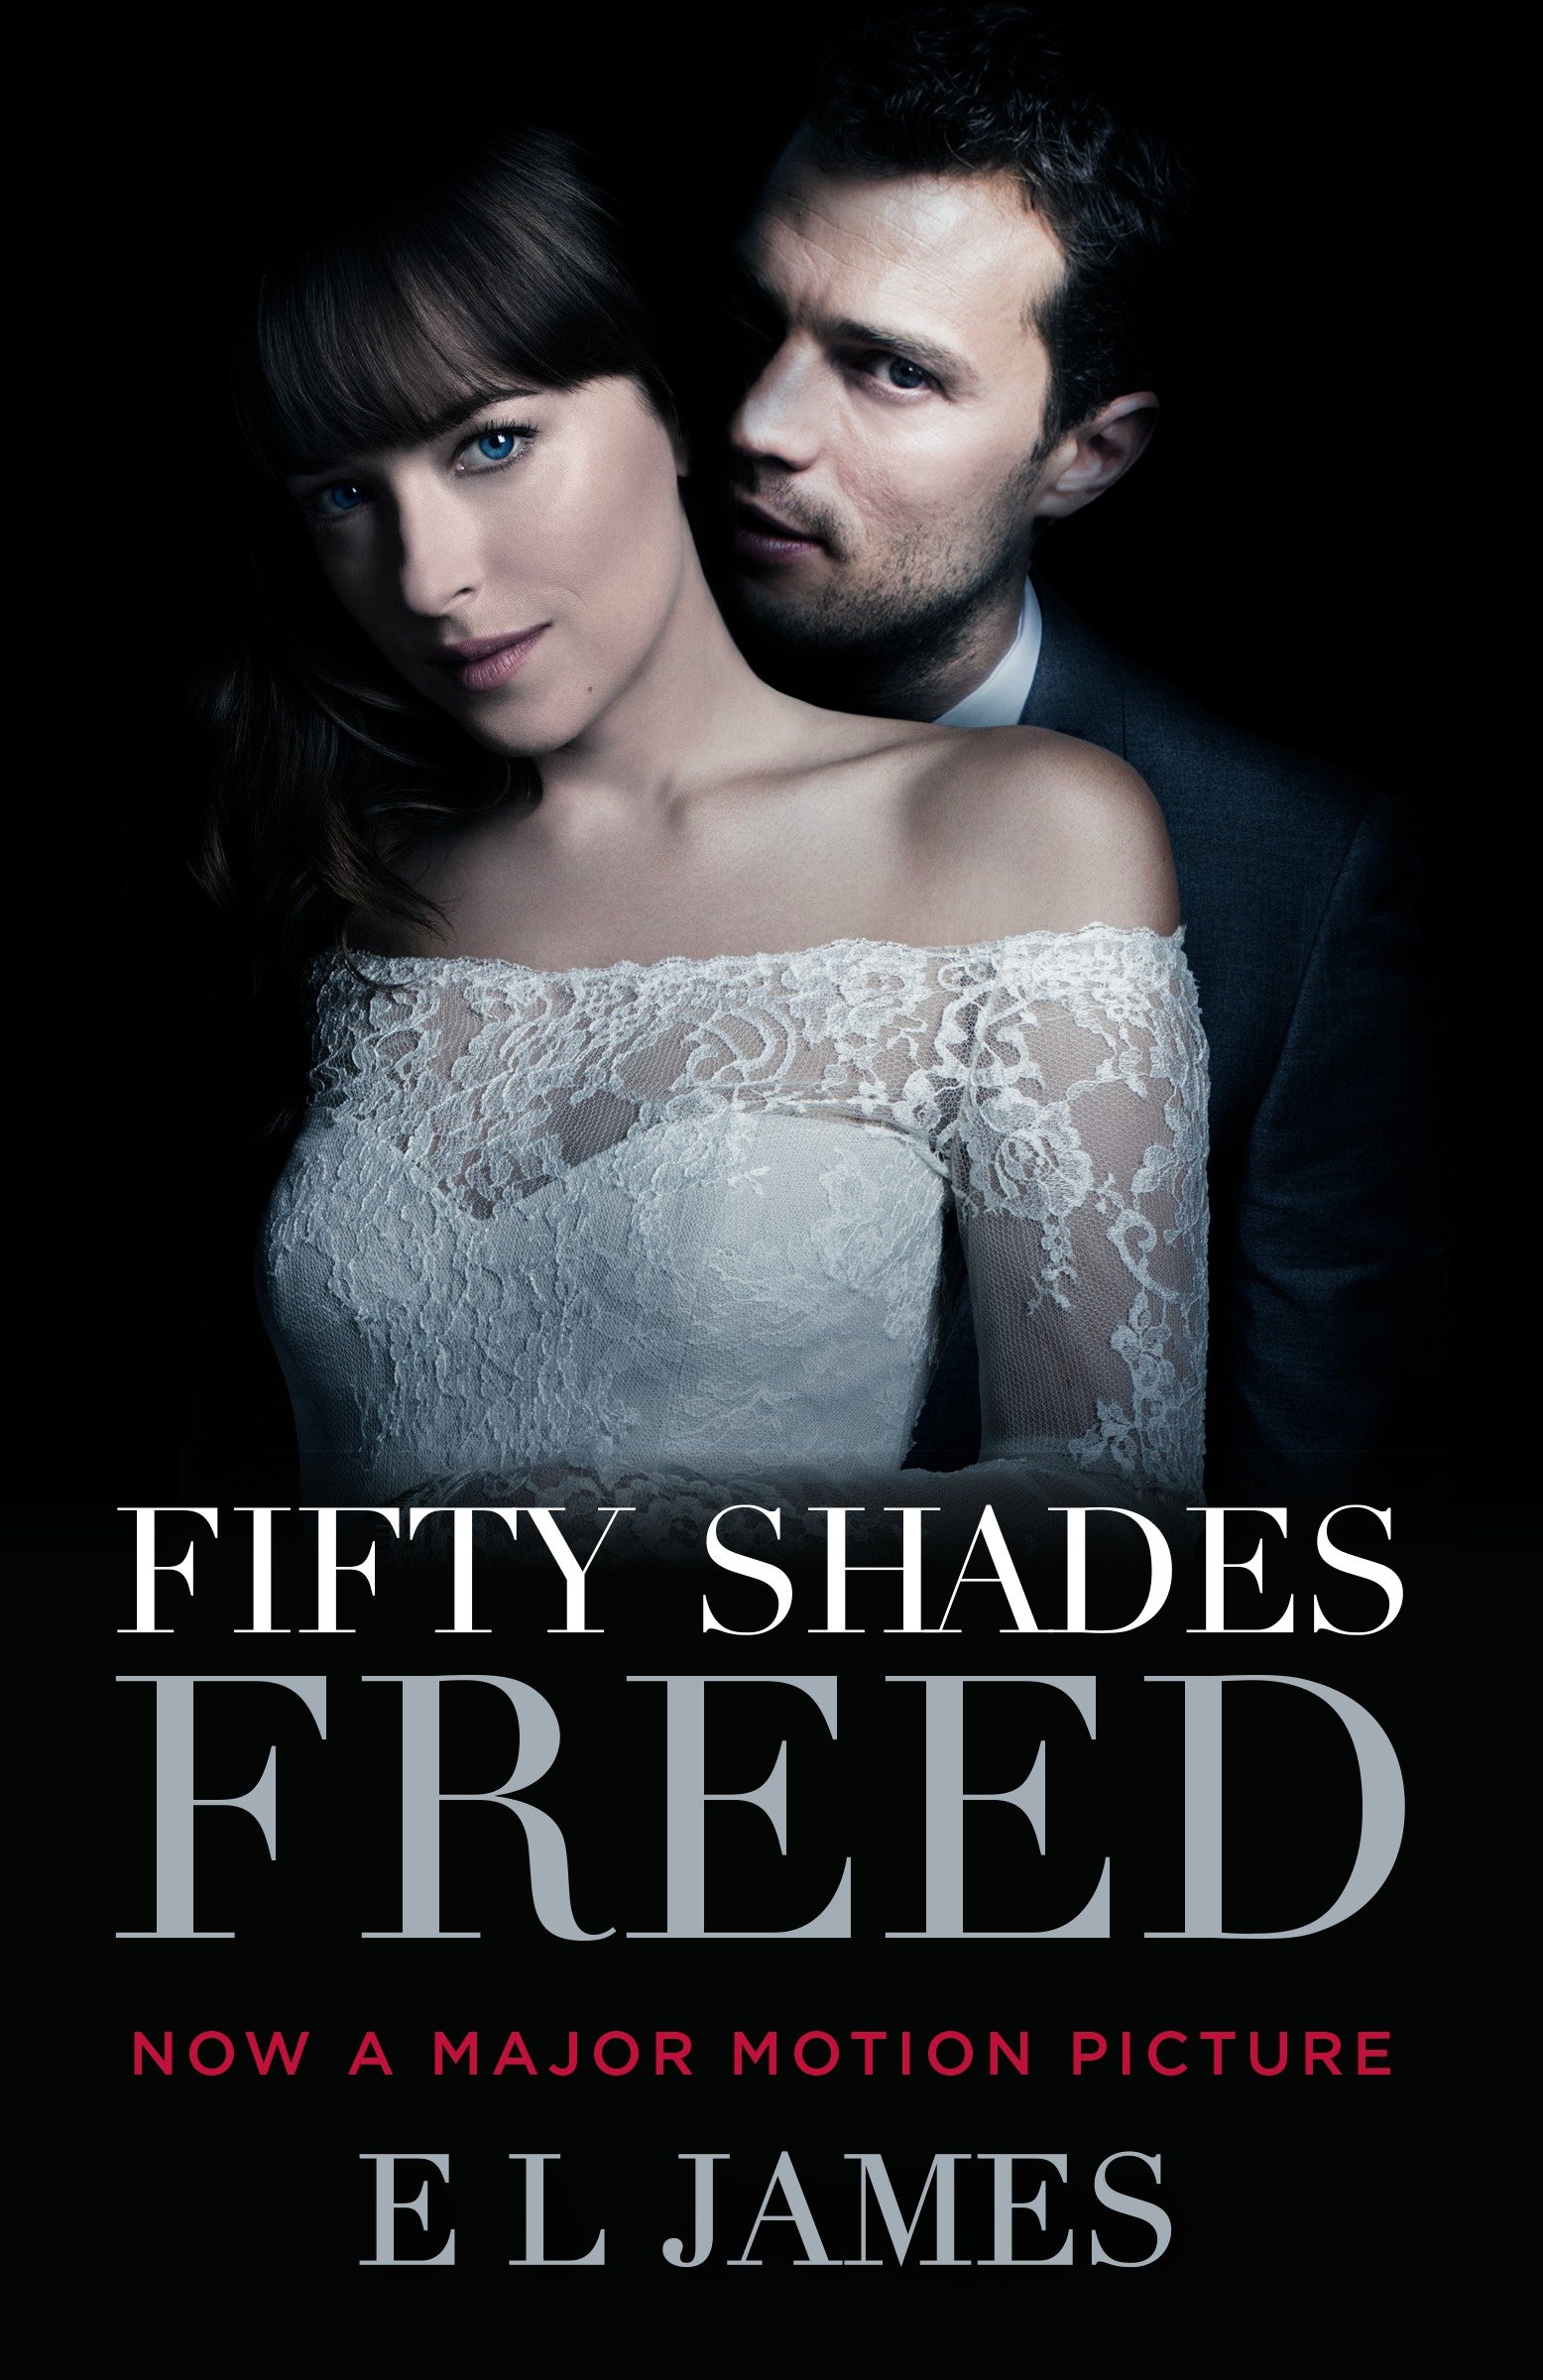 Fifty shades freed movie tie in book three of the fifty shades fifty shades freed movie tie in book three of the fifty shades trilogy fifty shades of grey series e l james 9780525436201 amazon books fandeluxe Choice Image